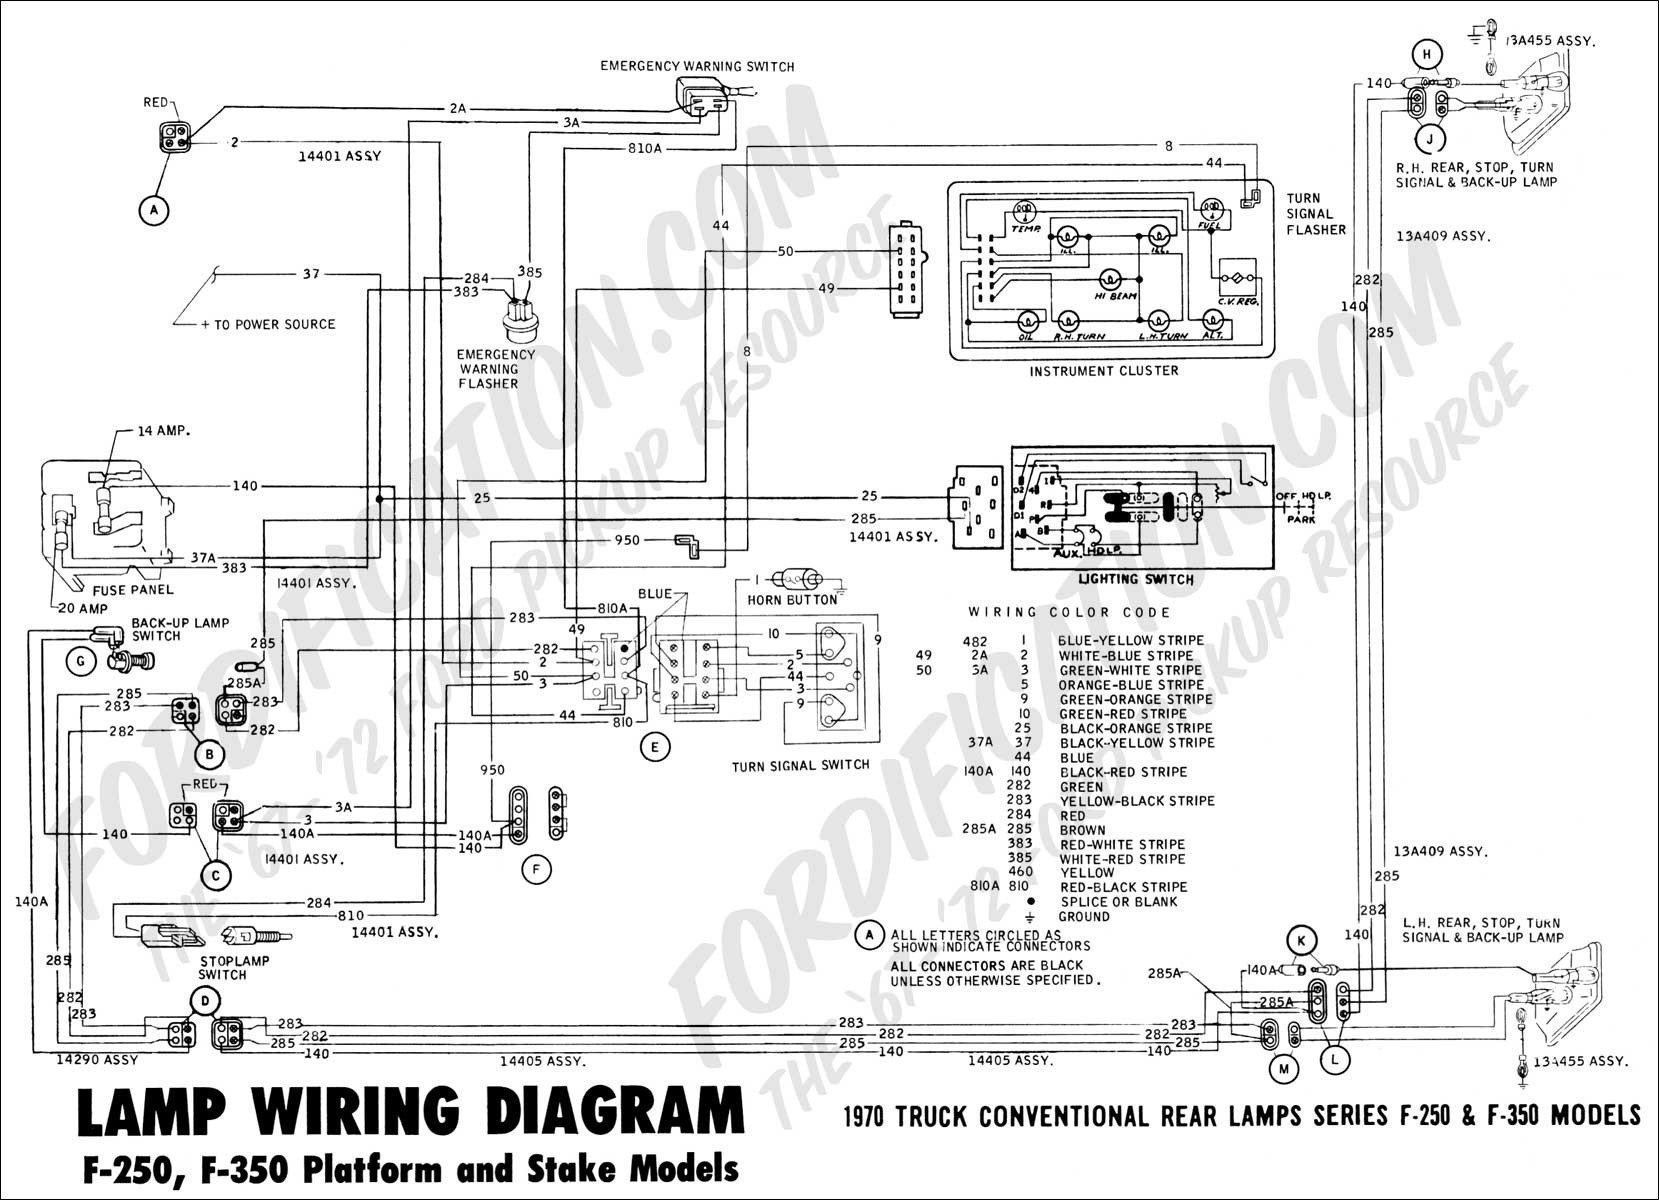 1999 ford f150 trailer wiring diagram trailer wiring diagram. Black Bedroom Furniture Sets. Home Design Ideas